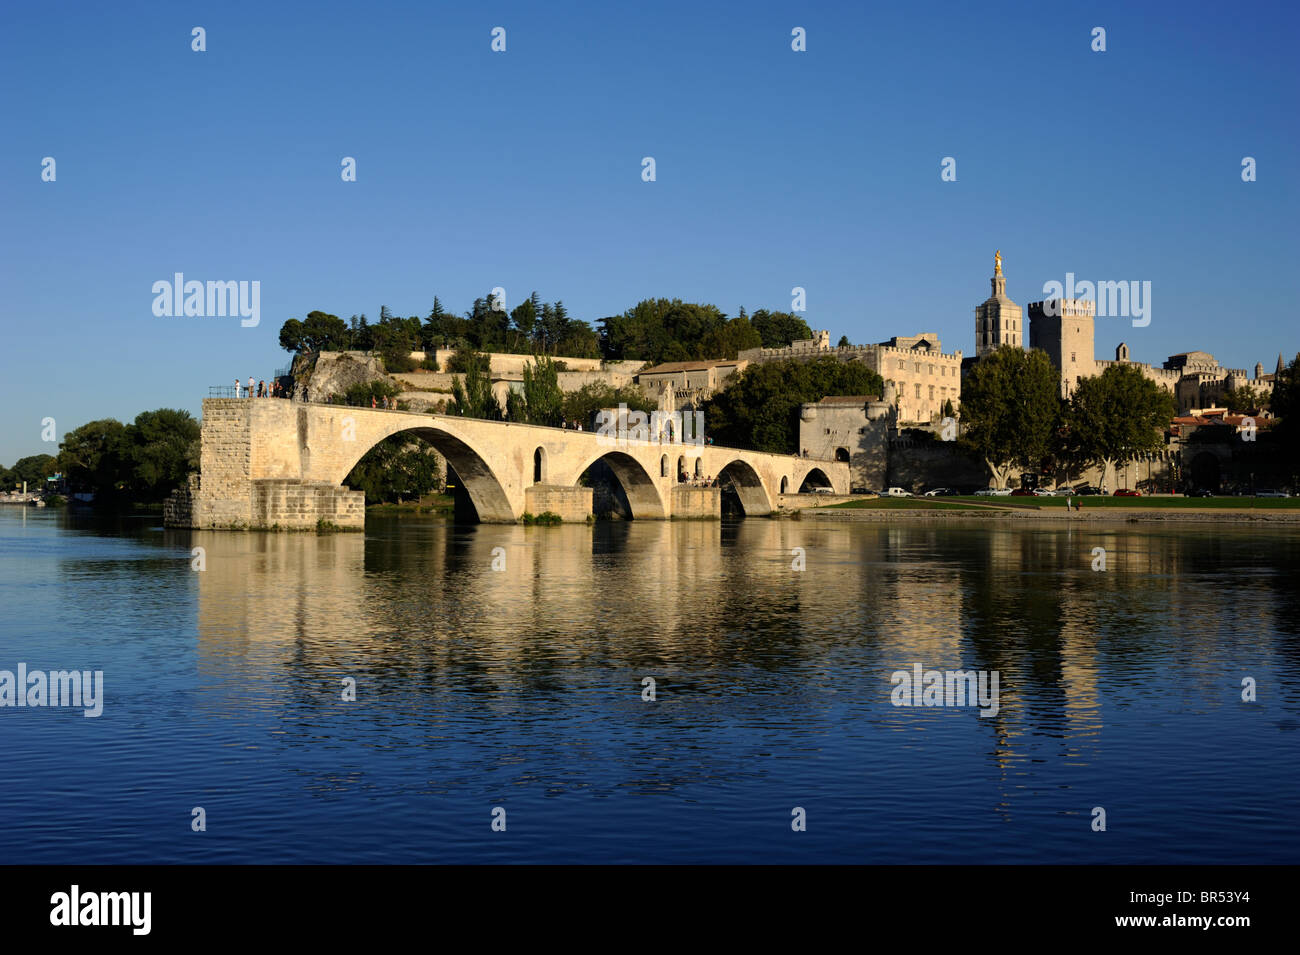 france, provence, avignon, rhone river, saint benezet bridge and papal palace - Stock Image